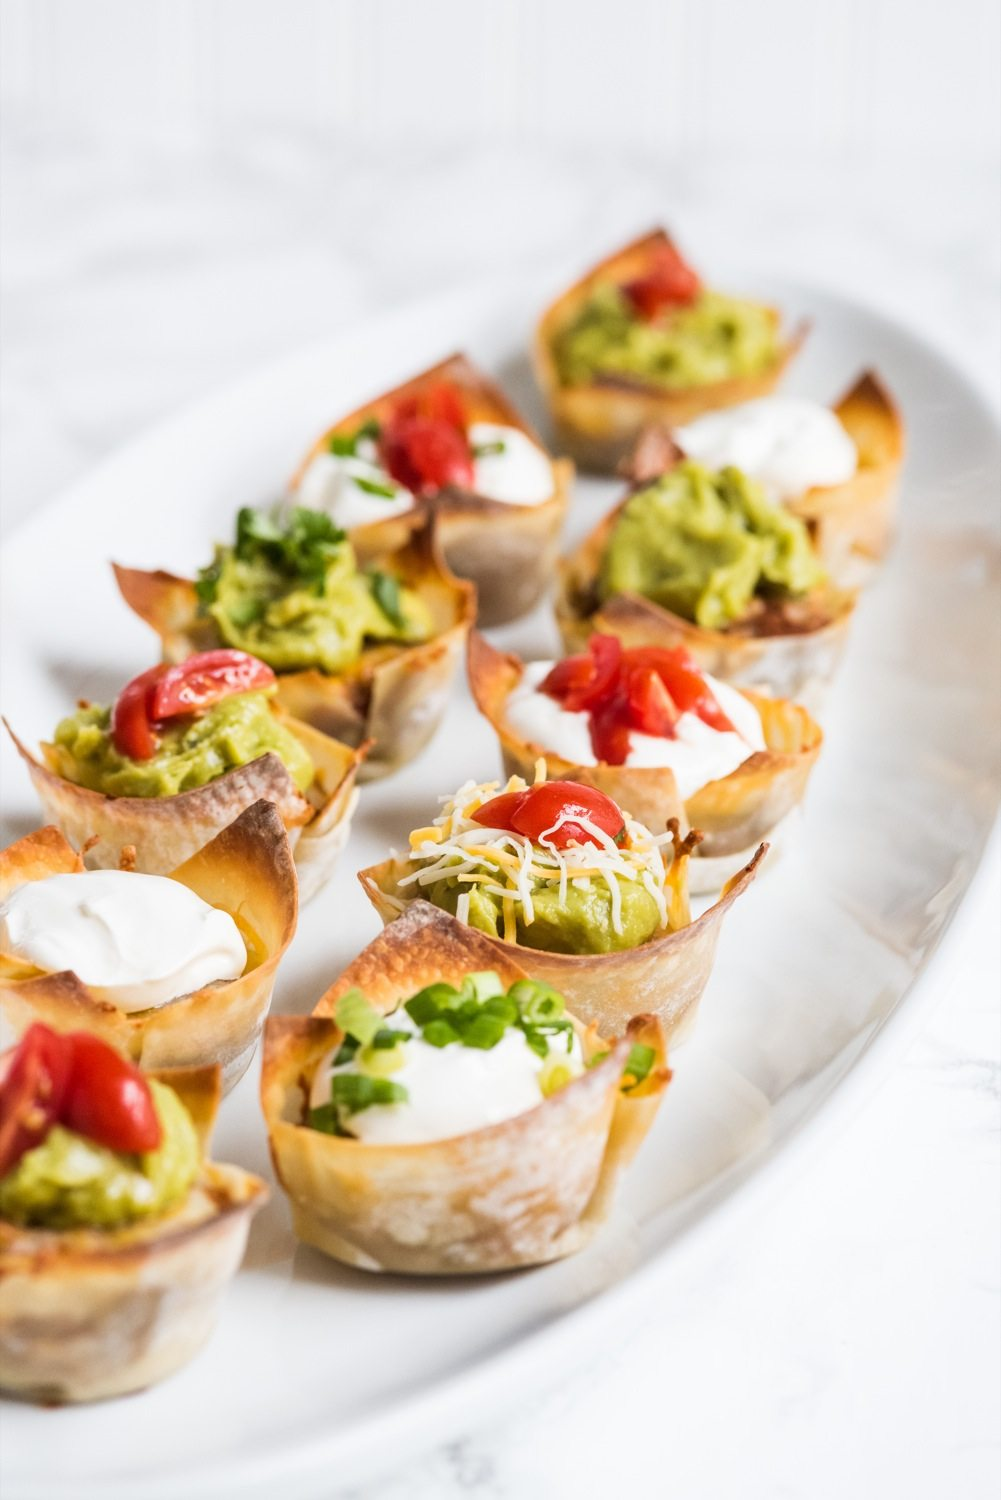 Appetizers Ideas For Dinner Party Part - 29: Crunchy Veggie Taco Cups | Super Bowl Recipes, Party Appetizers,  Entertaining Ideas And More